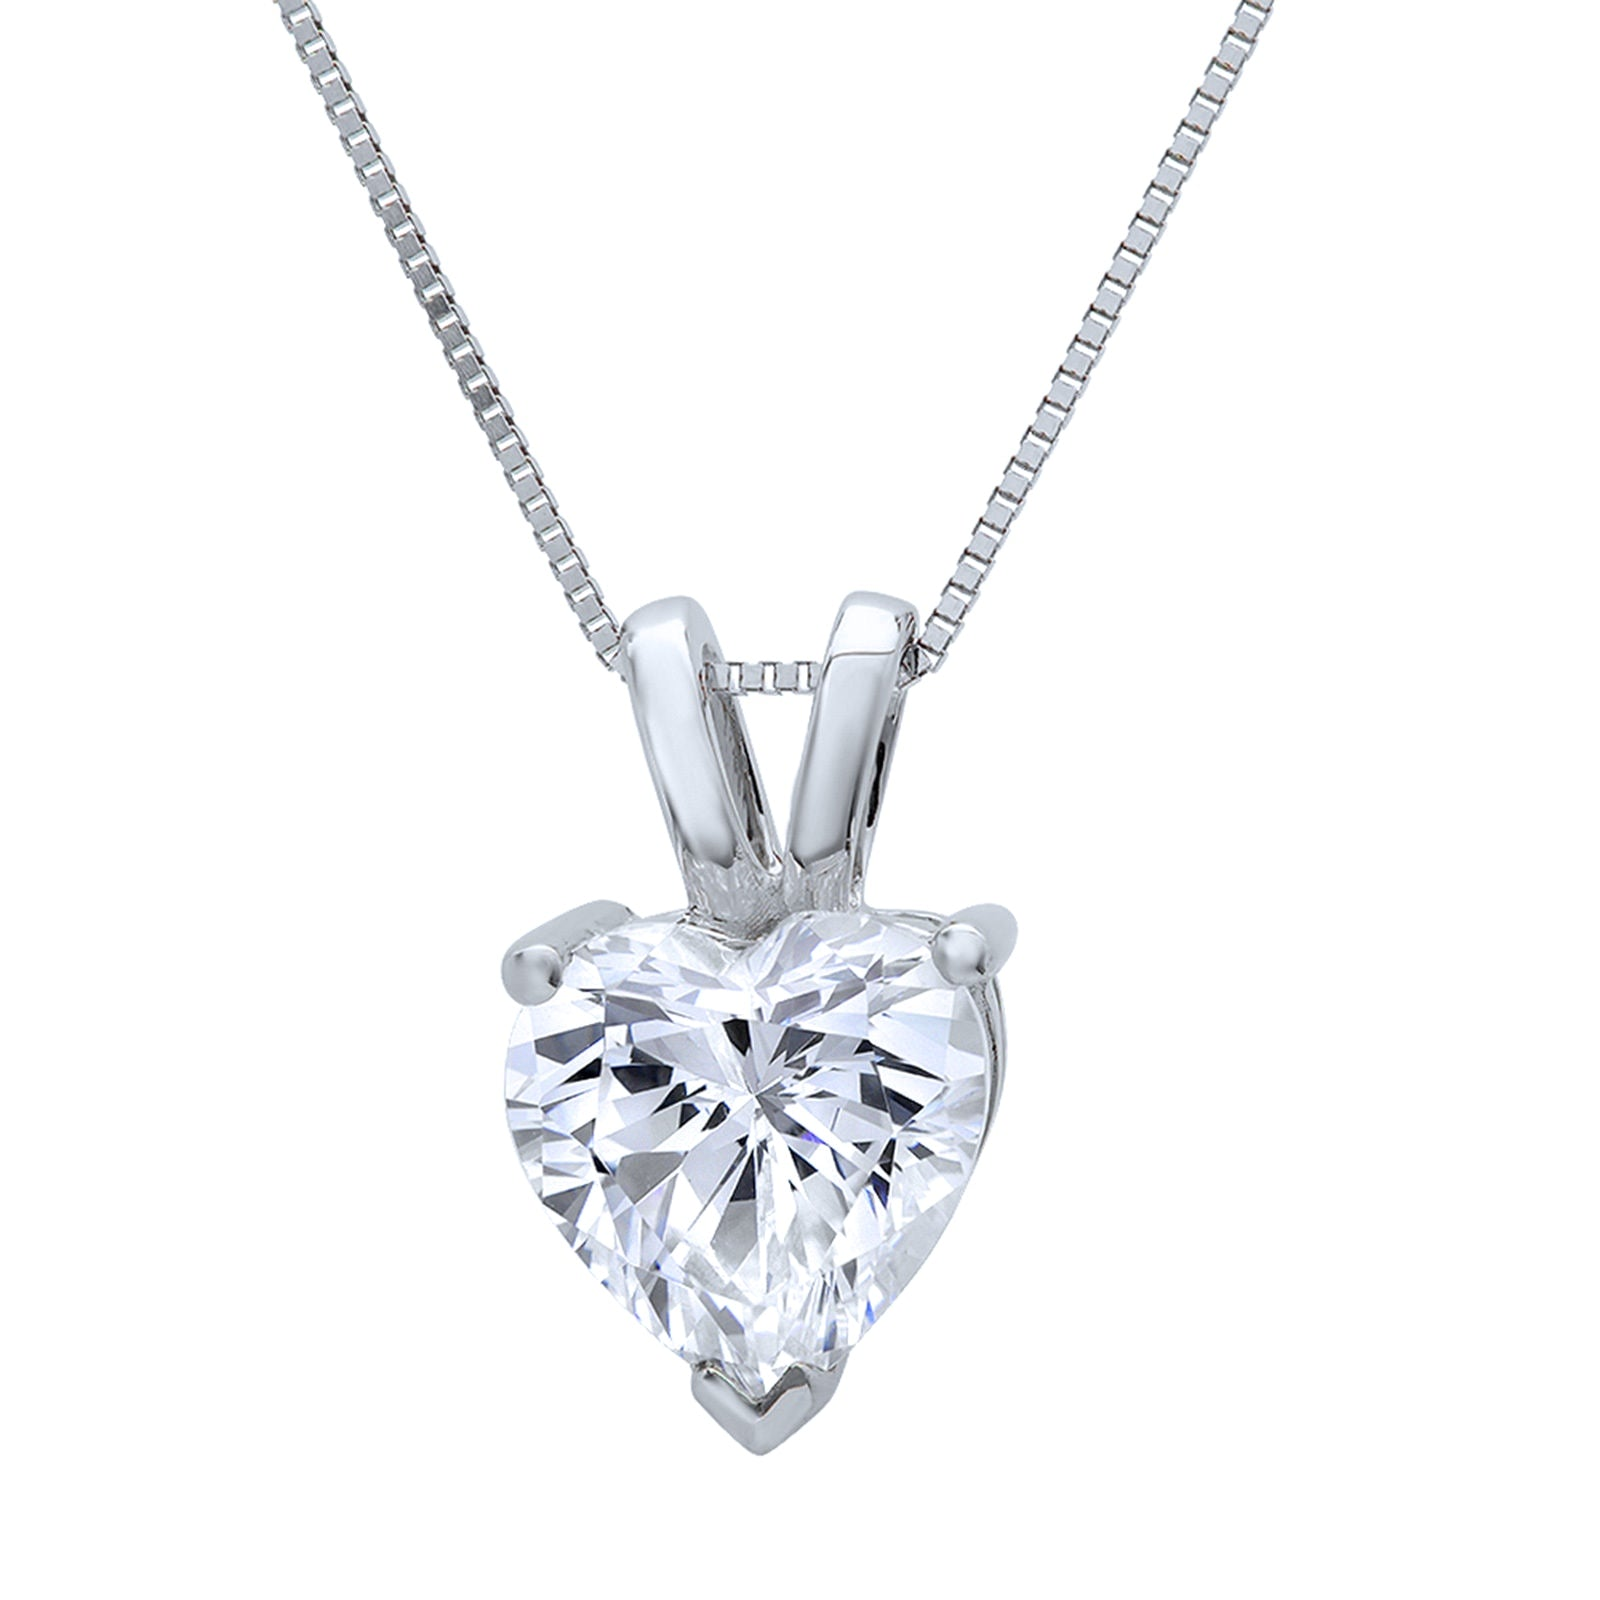 sterling pendant sharpen necklace diamond product silver op simulated jsp prd heart wid carat tw diamonluxe t hei w floating